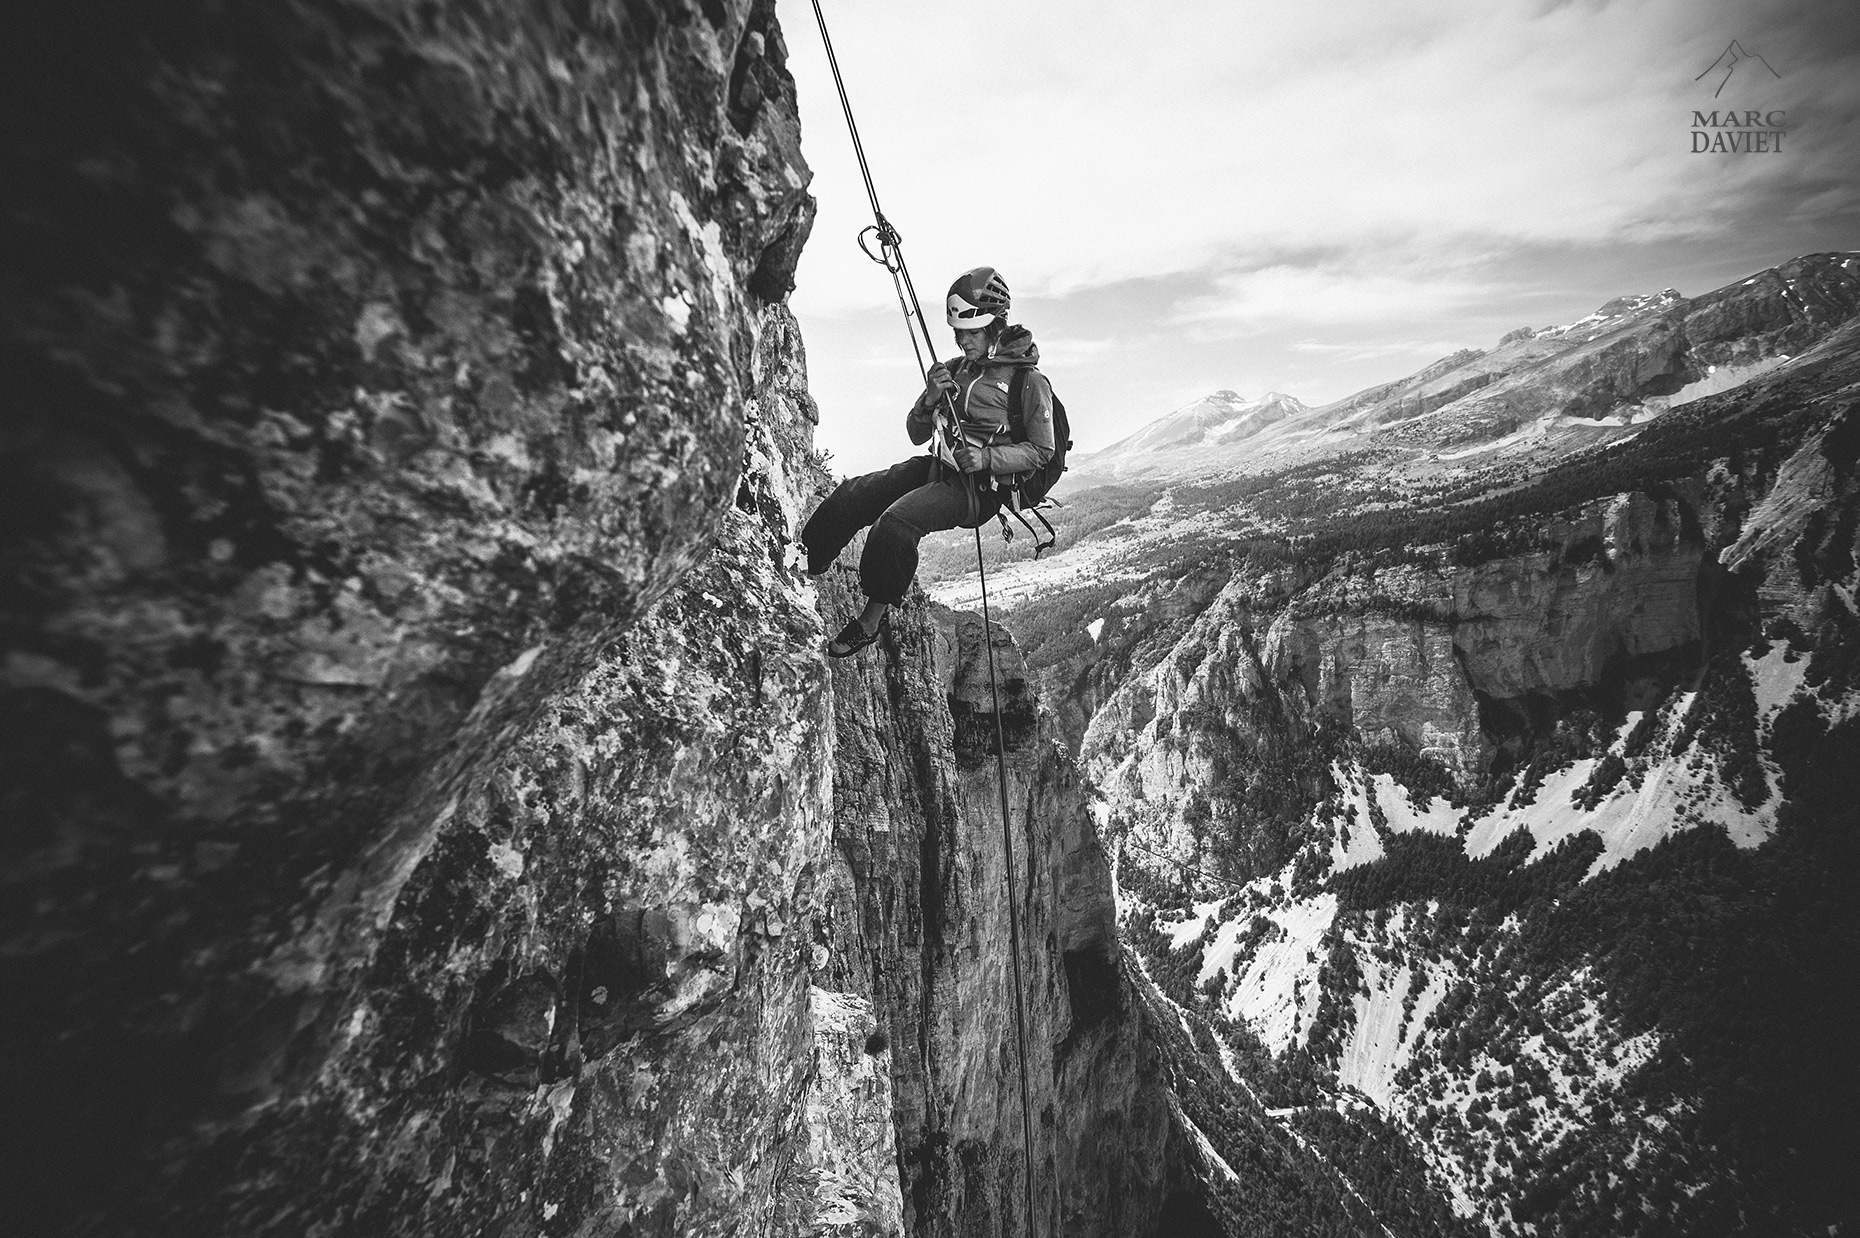 Abseil - Marc Daviet Photography